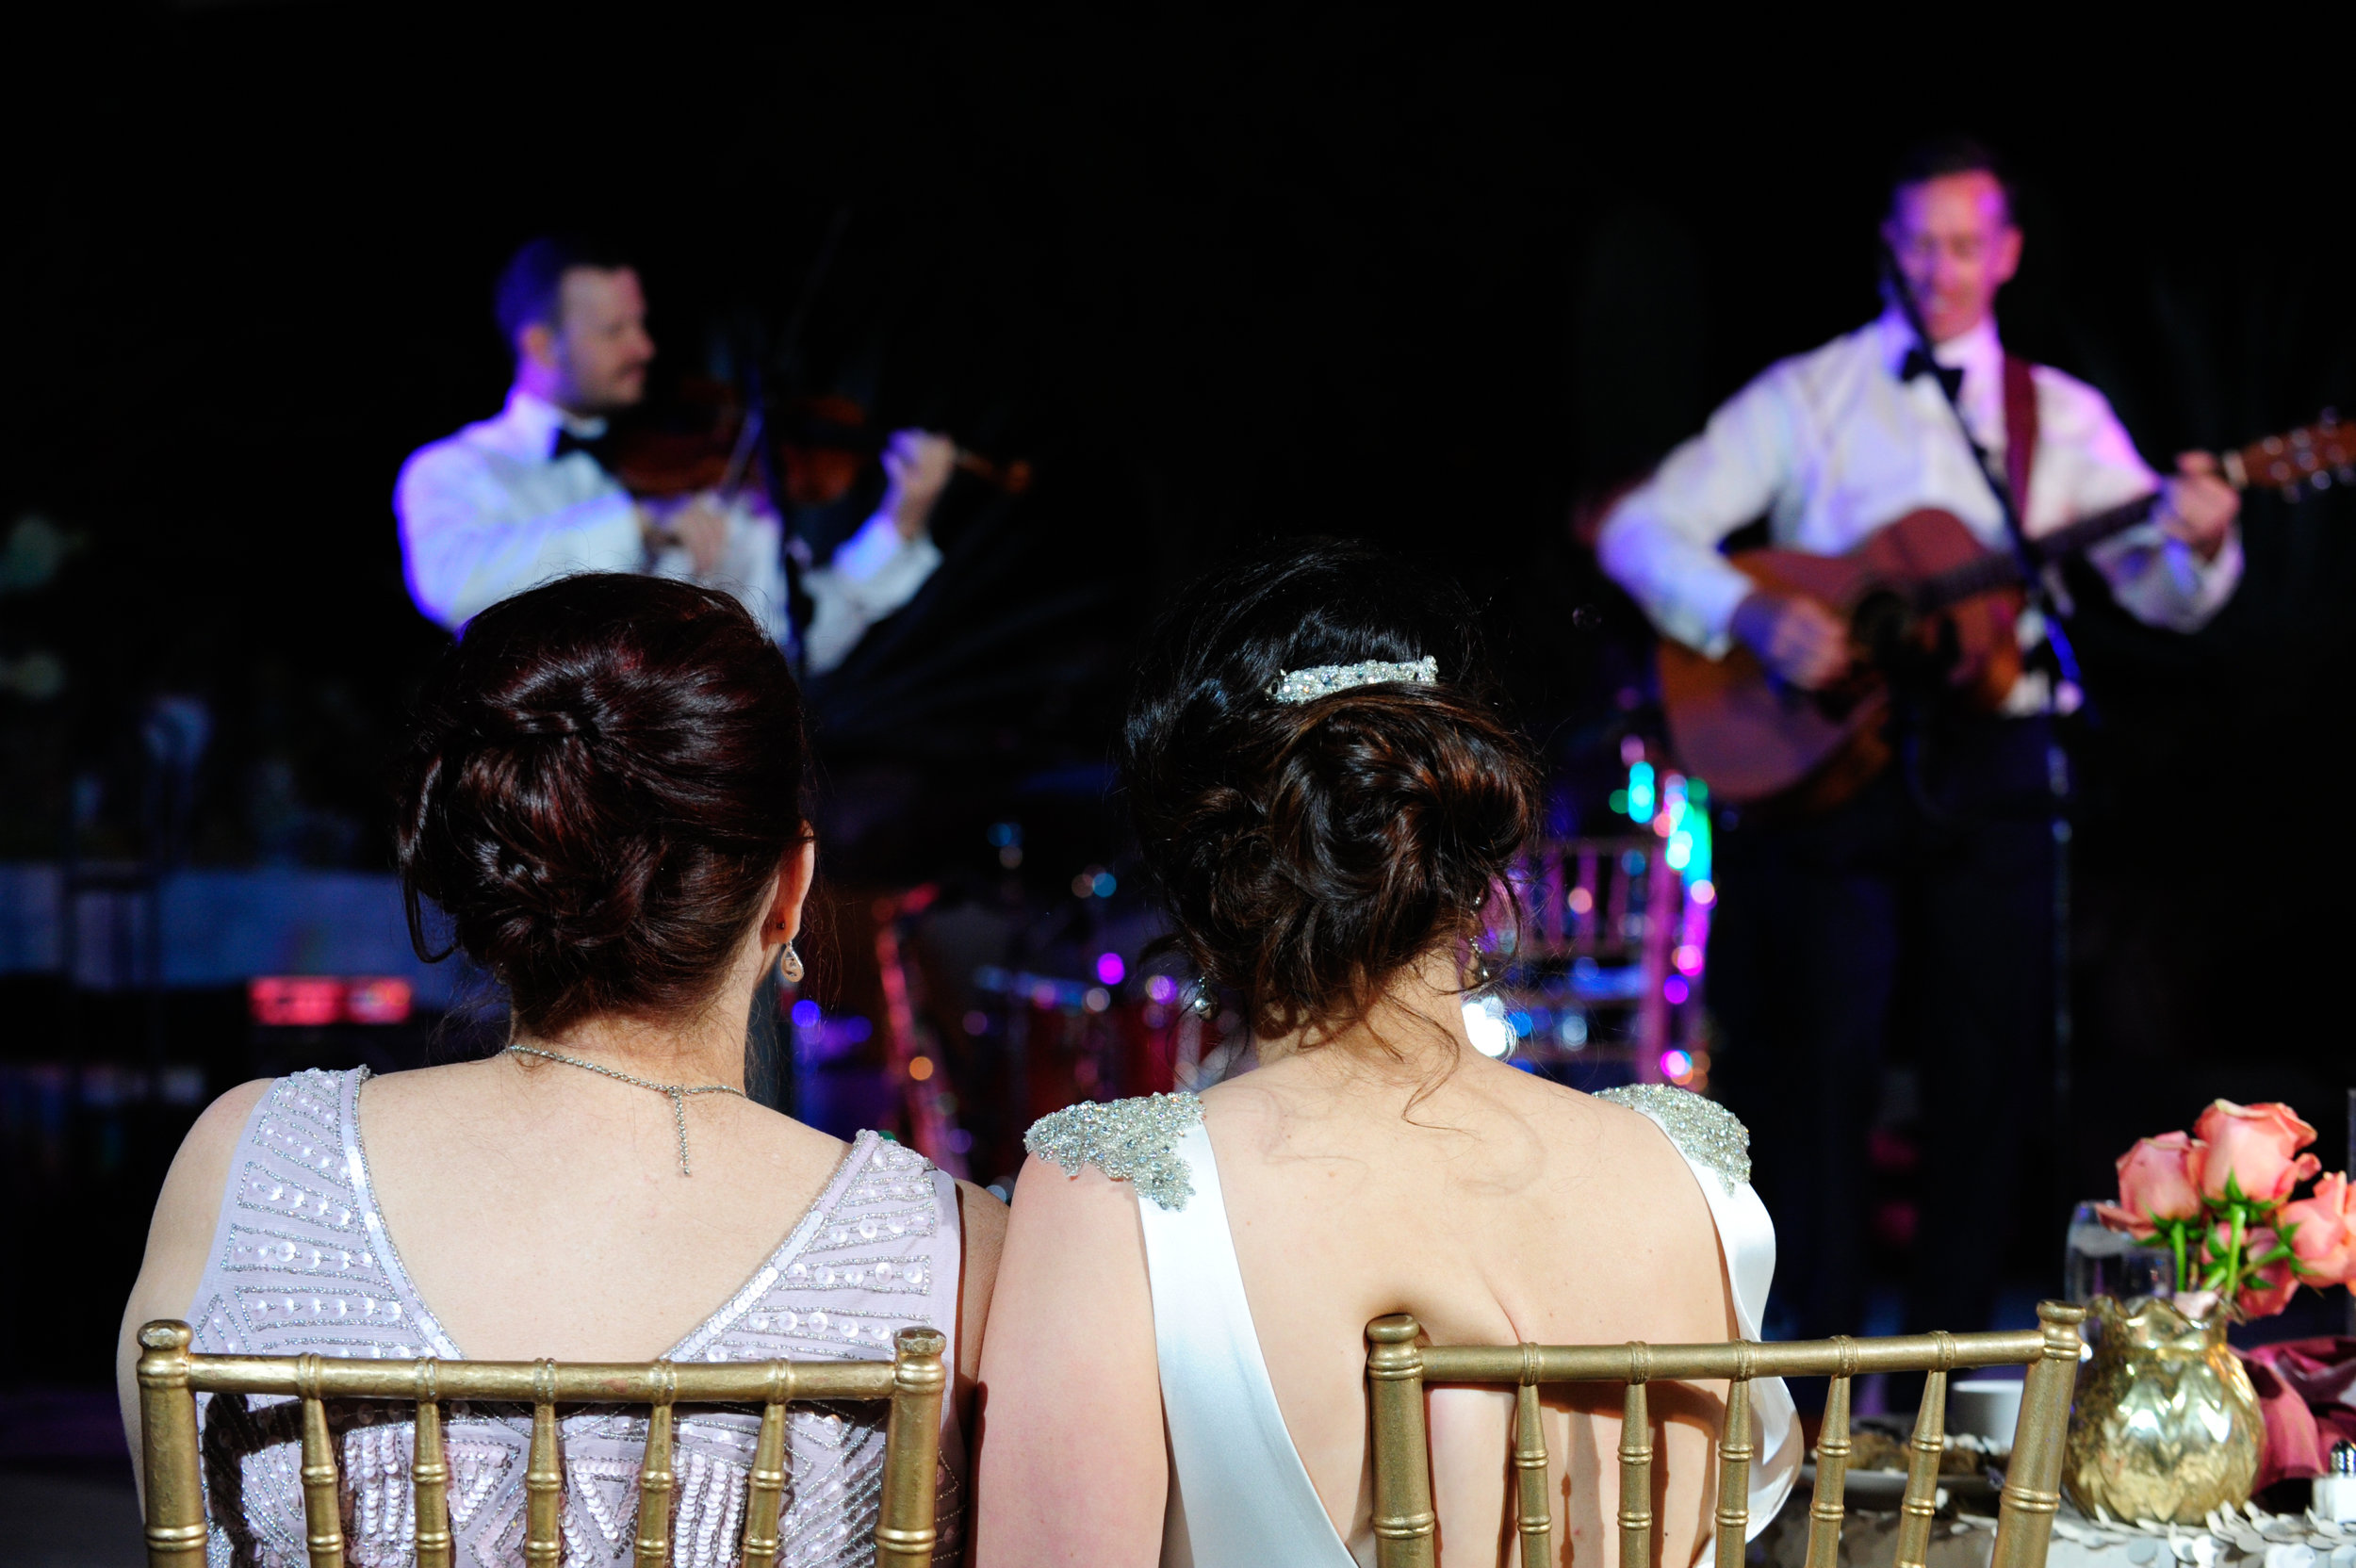 34 bride with maid of honor groom singing to bride sweet groom gestures Mod Wed Photography Life Design Events.jpg